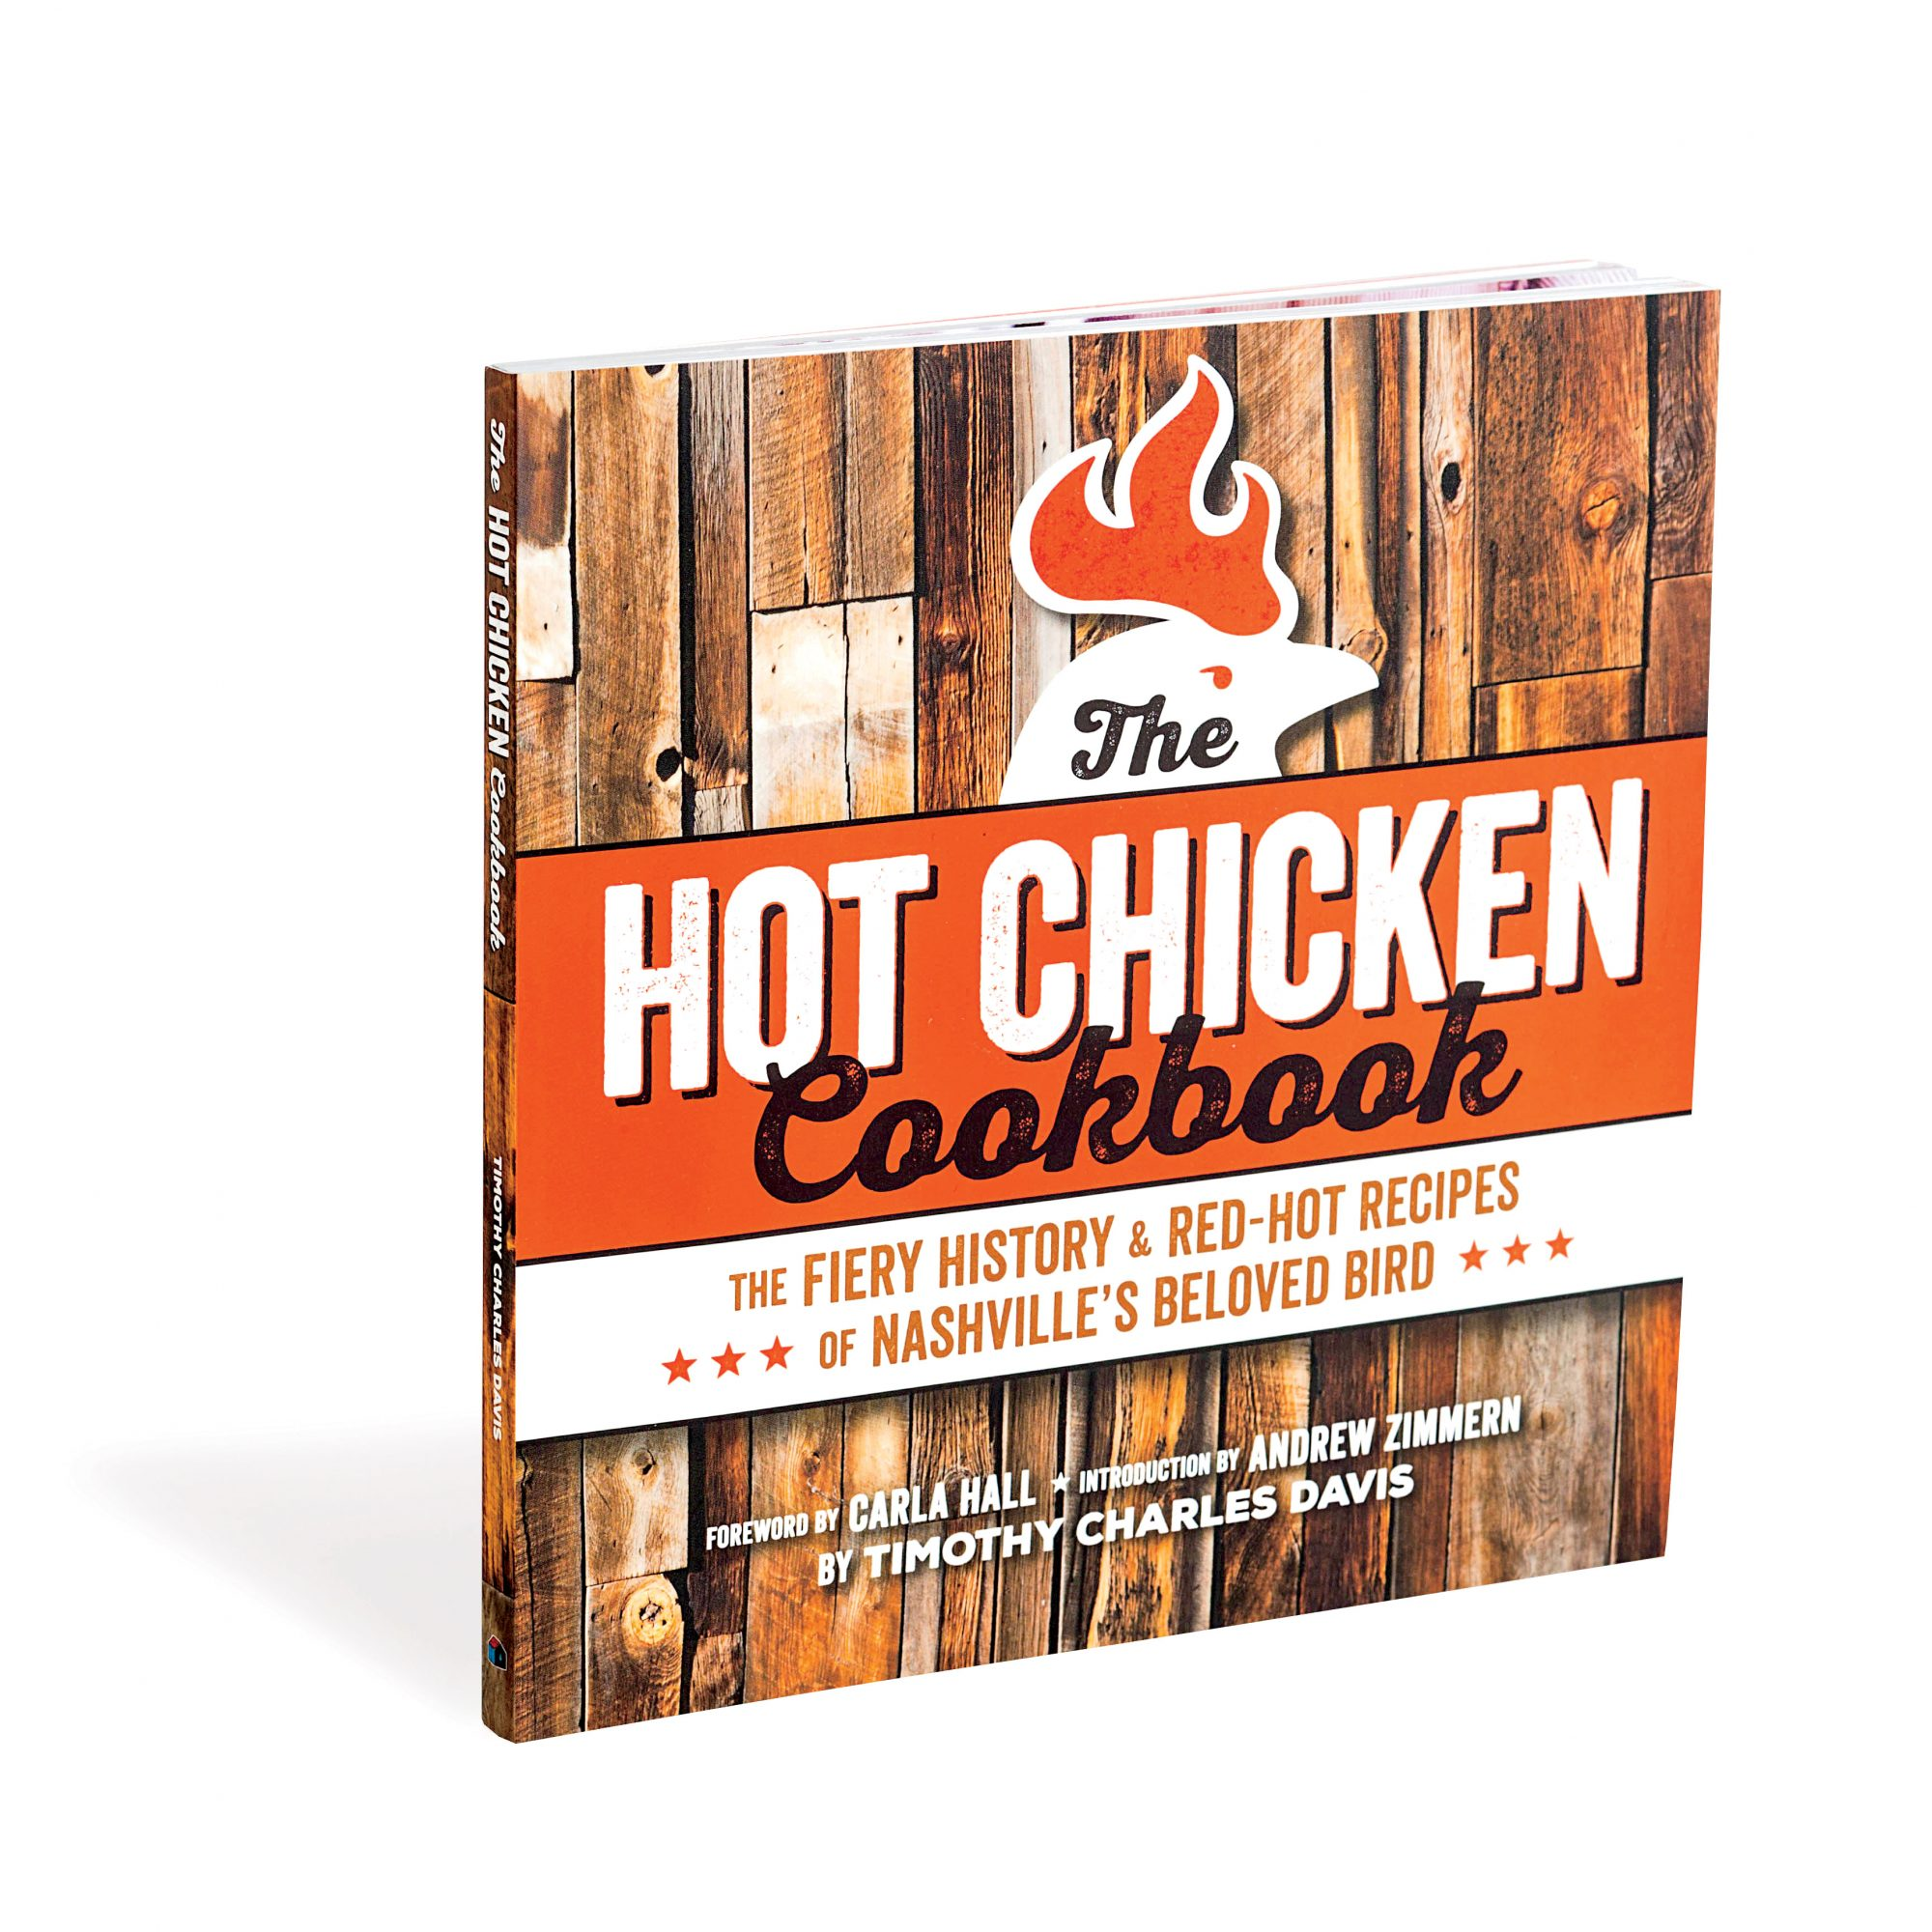 The Hot Chicken Cookbook